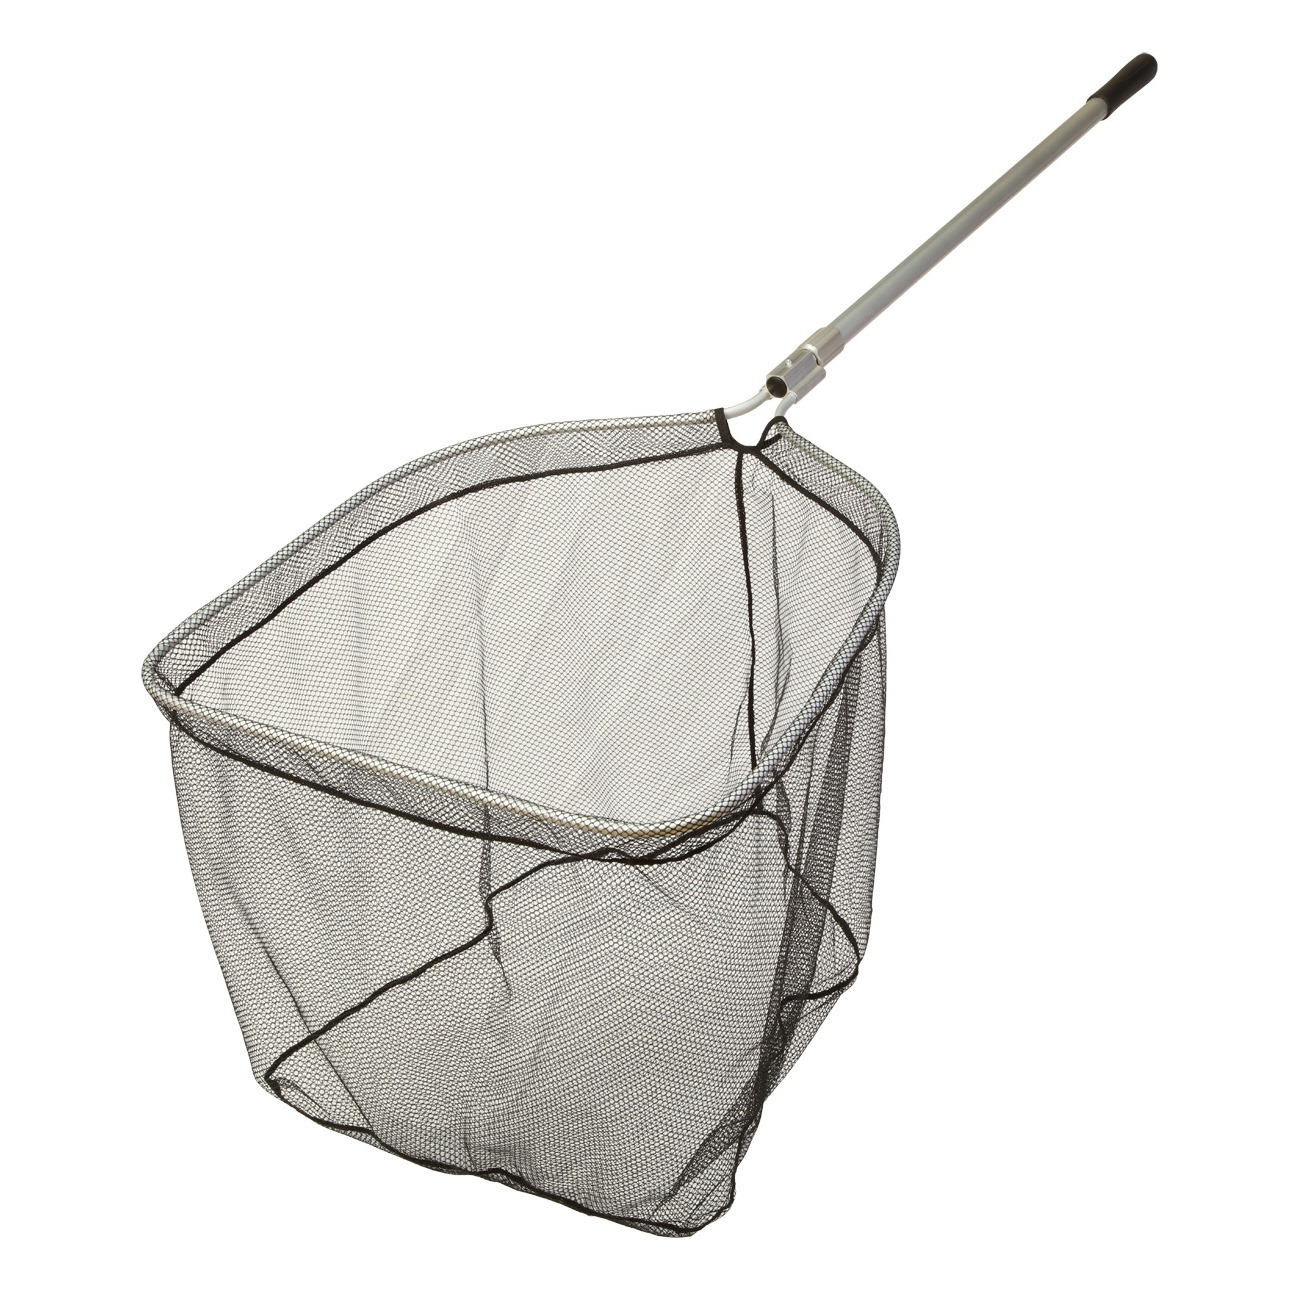 GIANTS FISHING Podberák - Big Fish Landing Net - 2.5m, 75x65cm